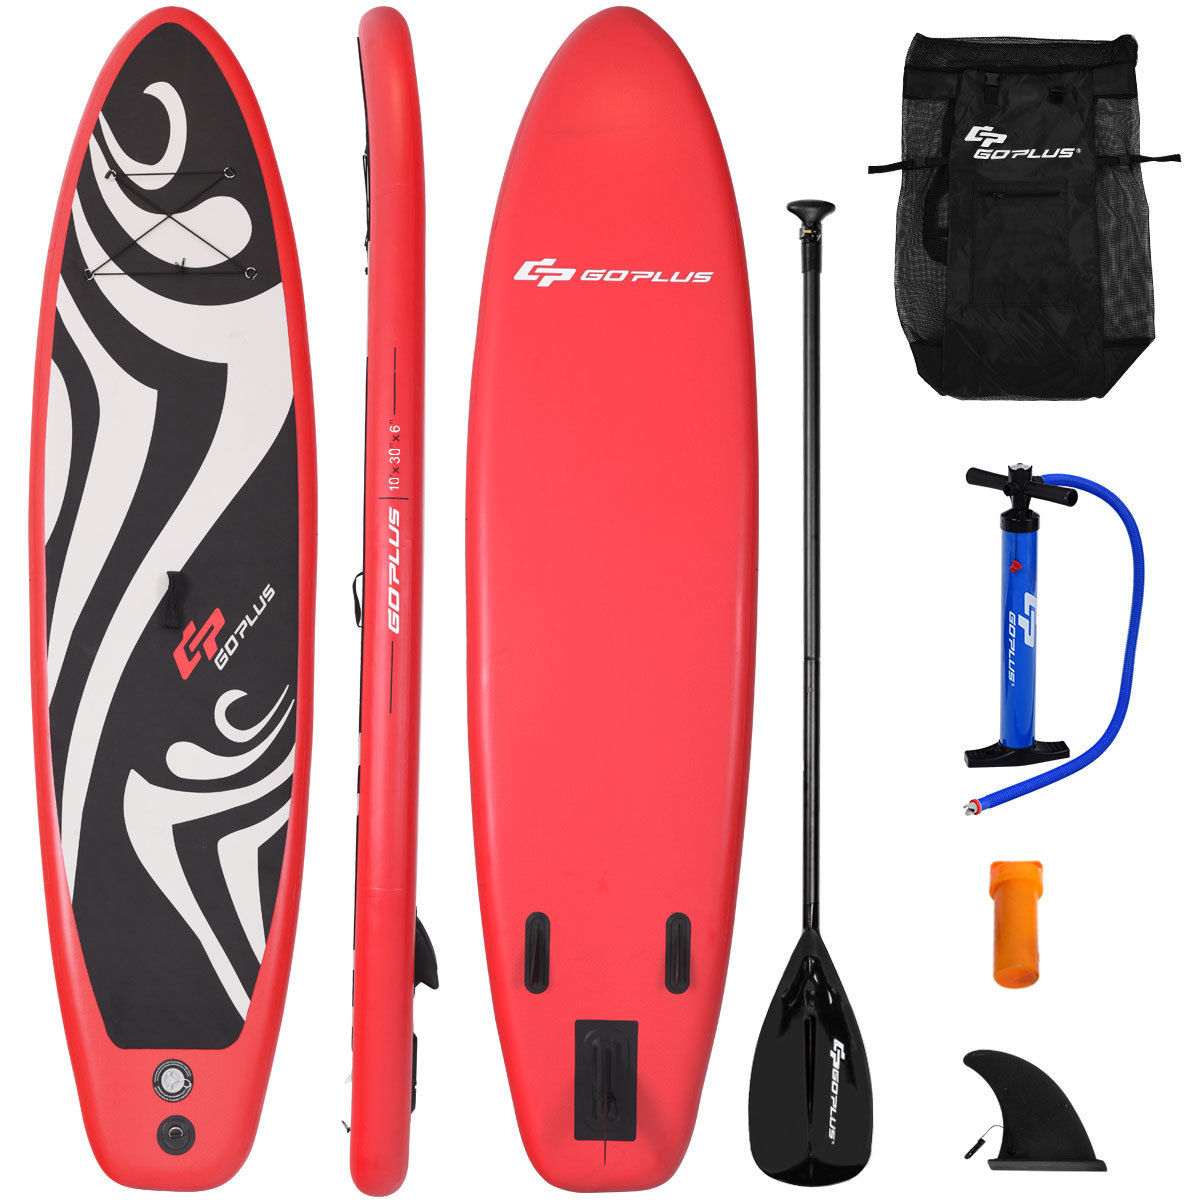 Goplus 10' Inflatable Stand up Paddle Board Surfboard SUP W  Bag Adjustable Fin Paddle by Costway